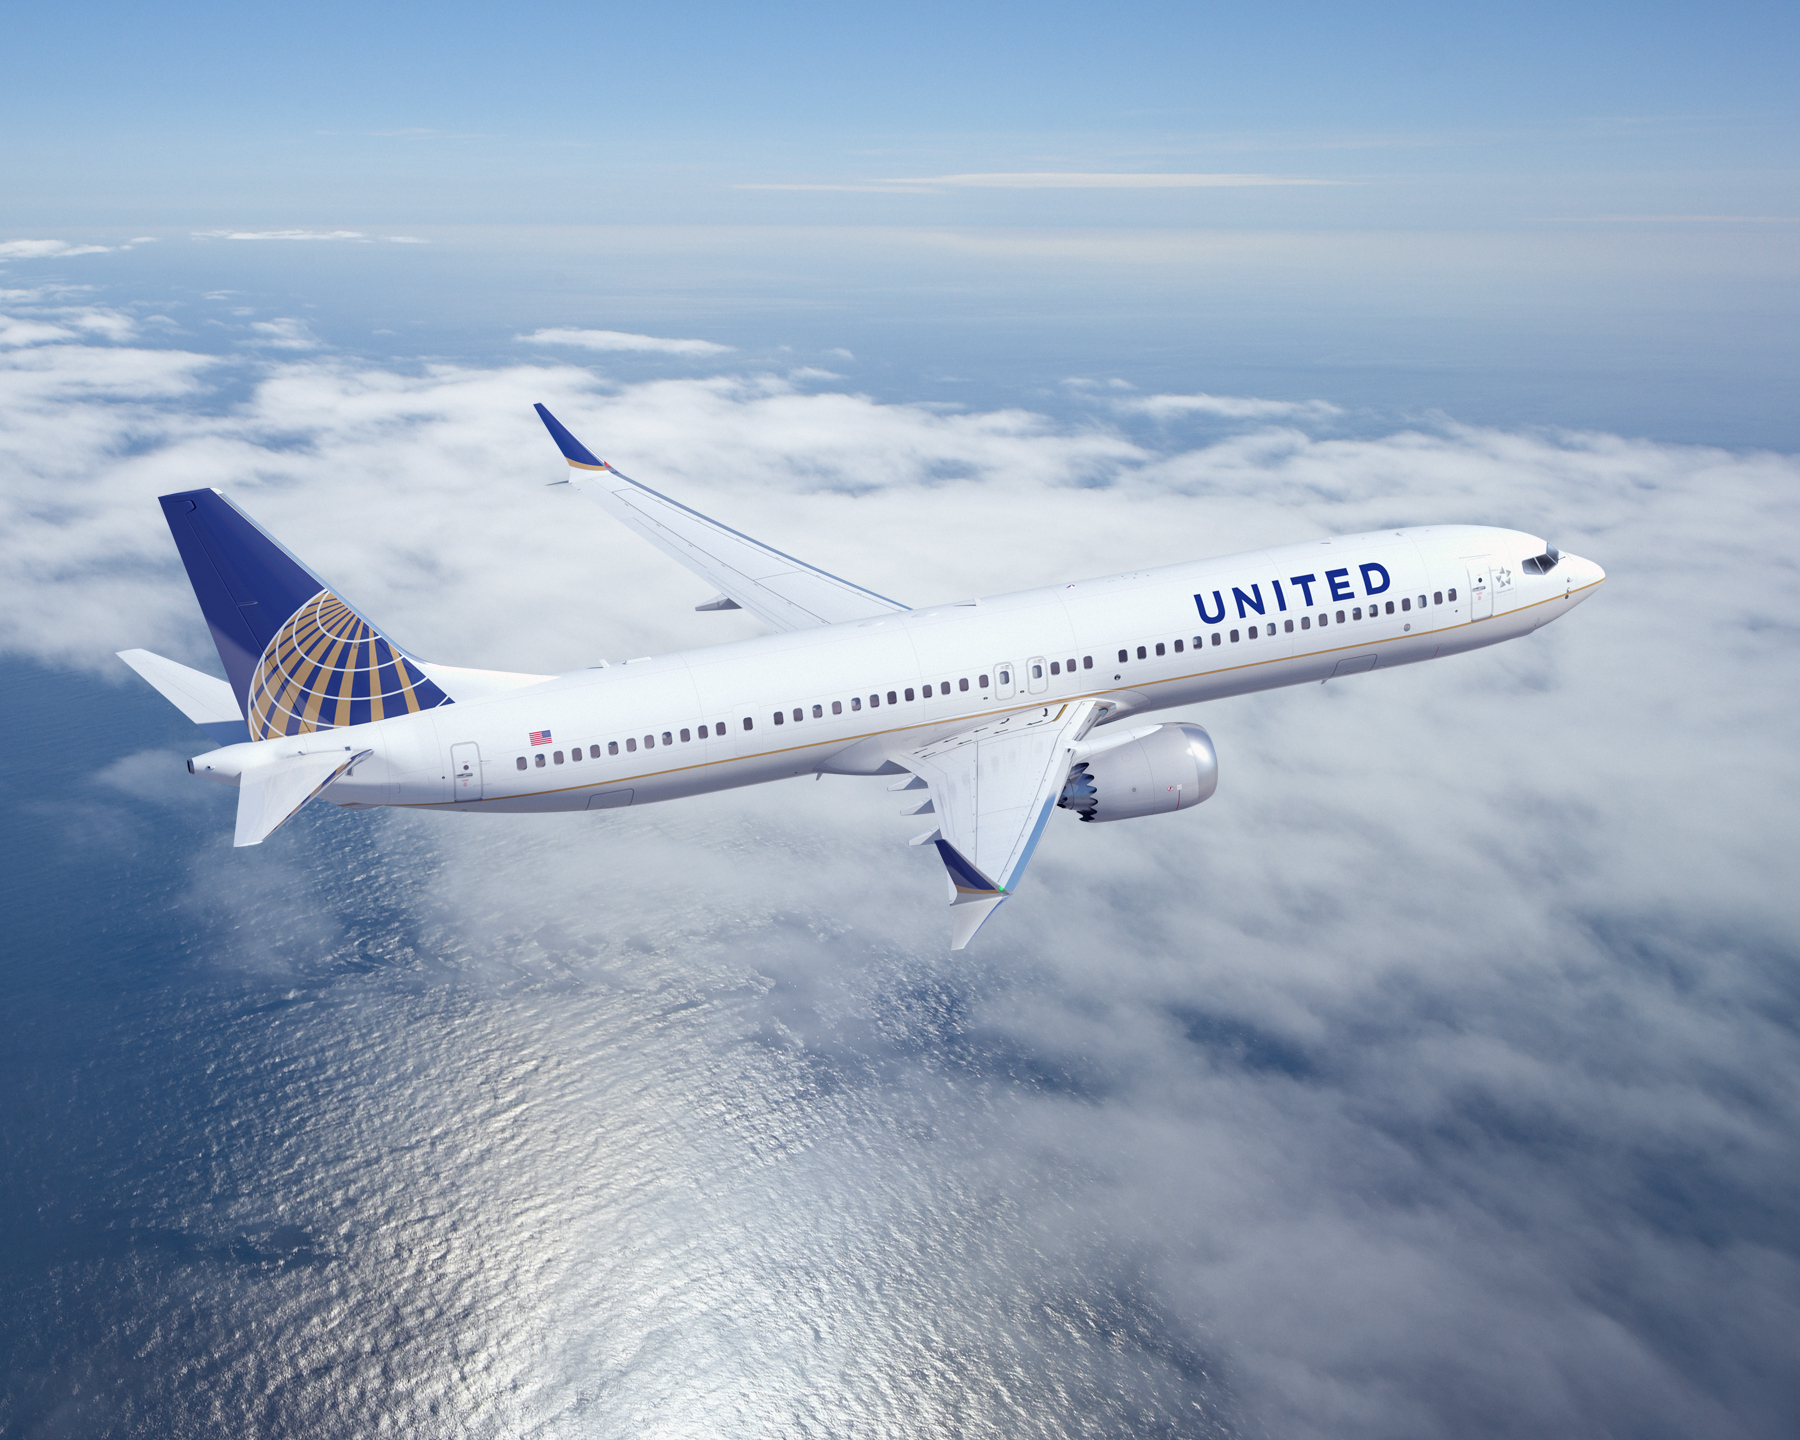 United Airlines launches shortest flight in the US, from San Francisco to Santa Rosa